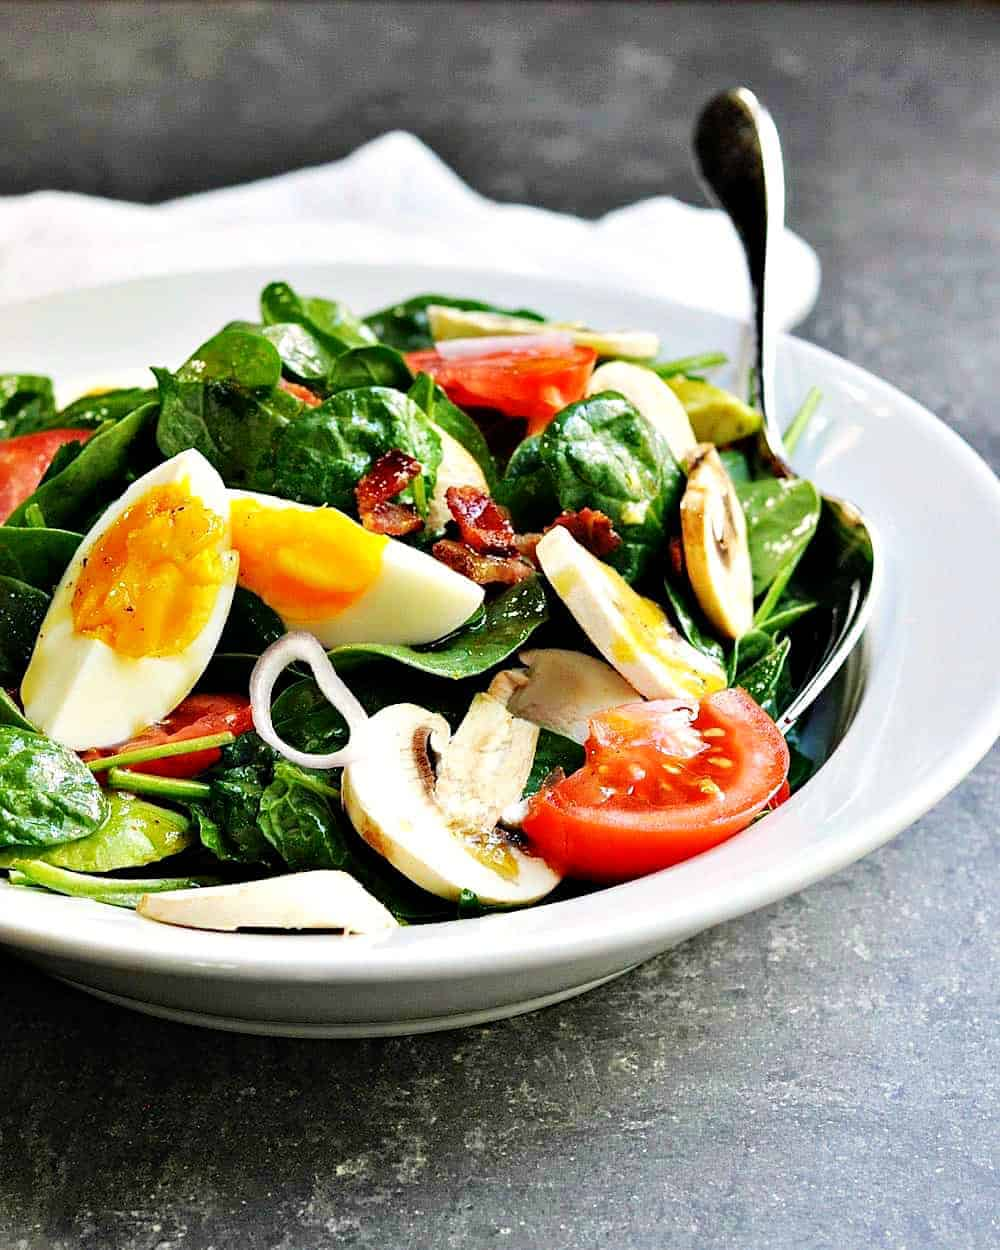 Spinach-Salad-Served in a white ceramic bowl